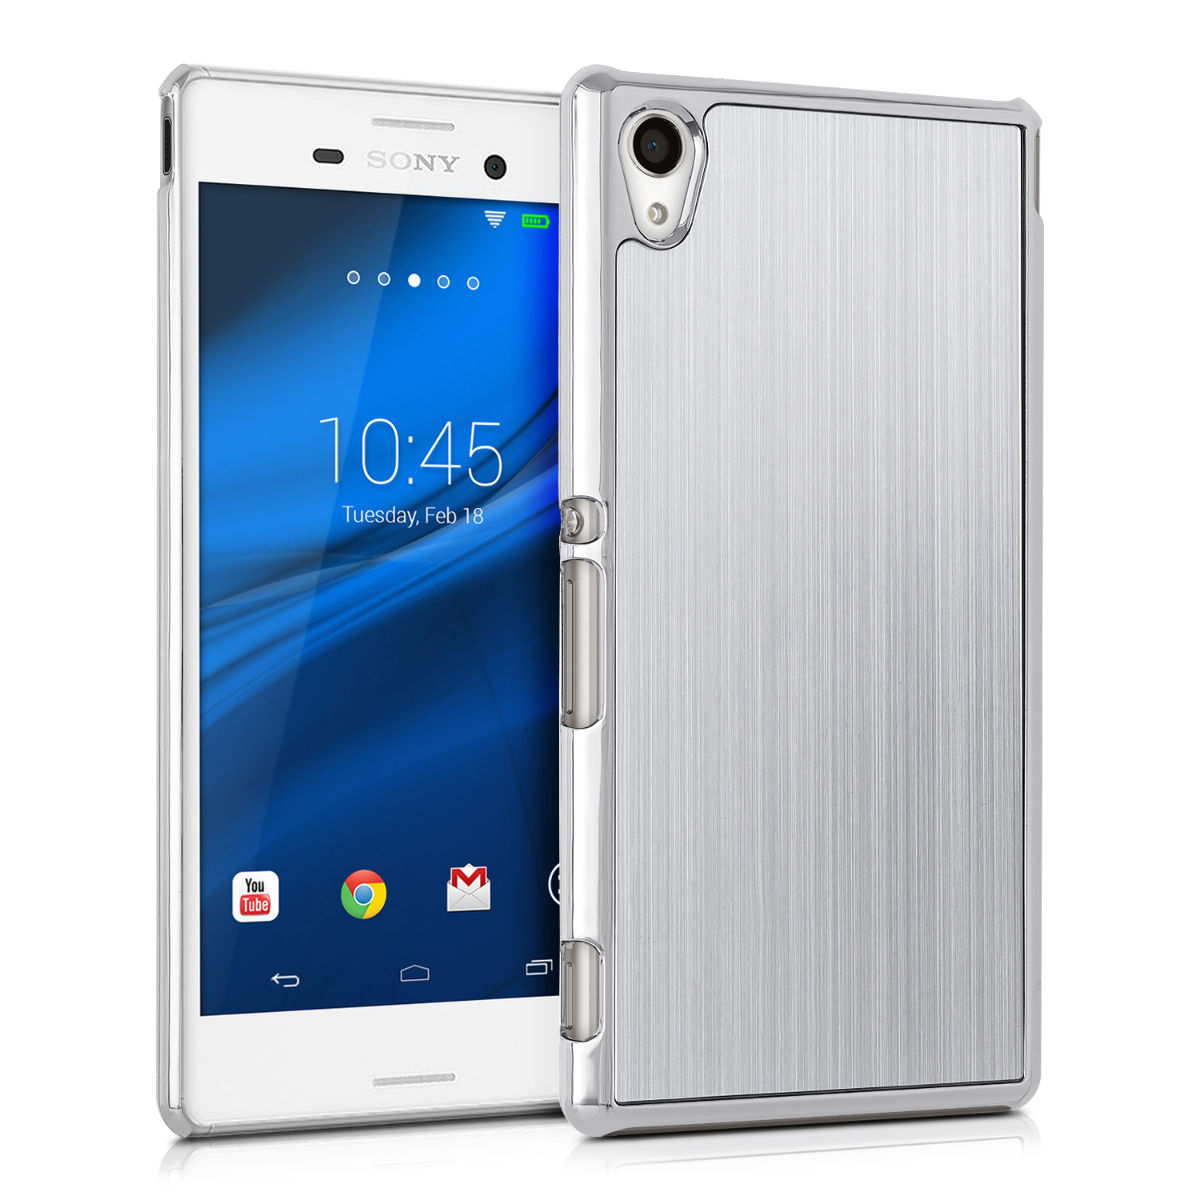 Brushed Aluminum Hard Case Back Cover For Sony Xperia M4 Aqua Kwmobile Shockproof Protective Silver